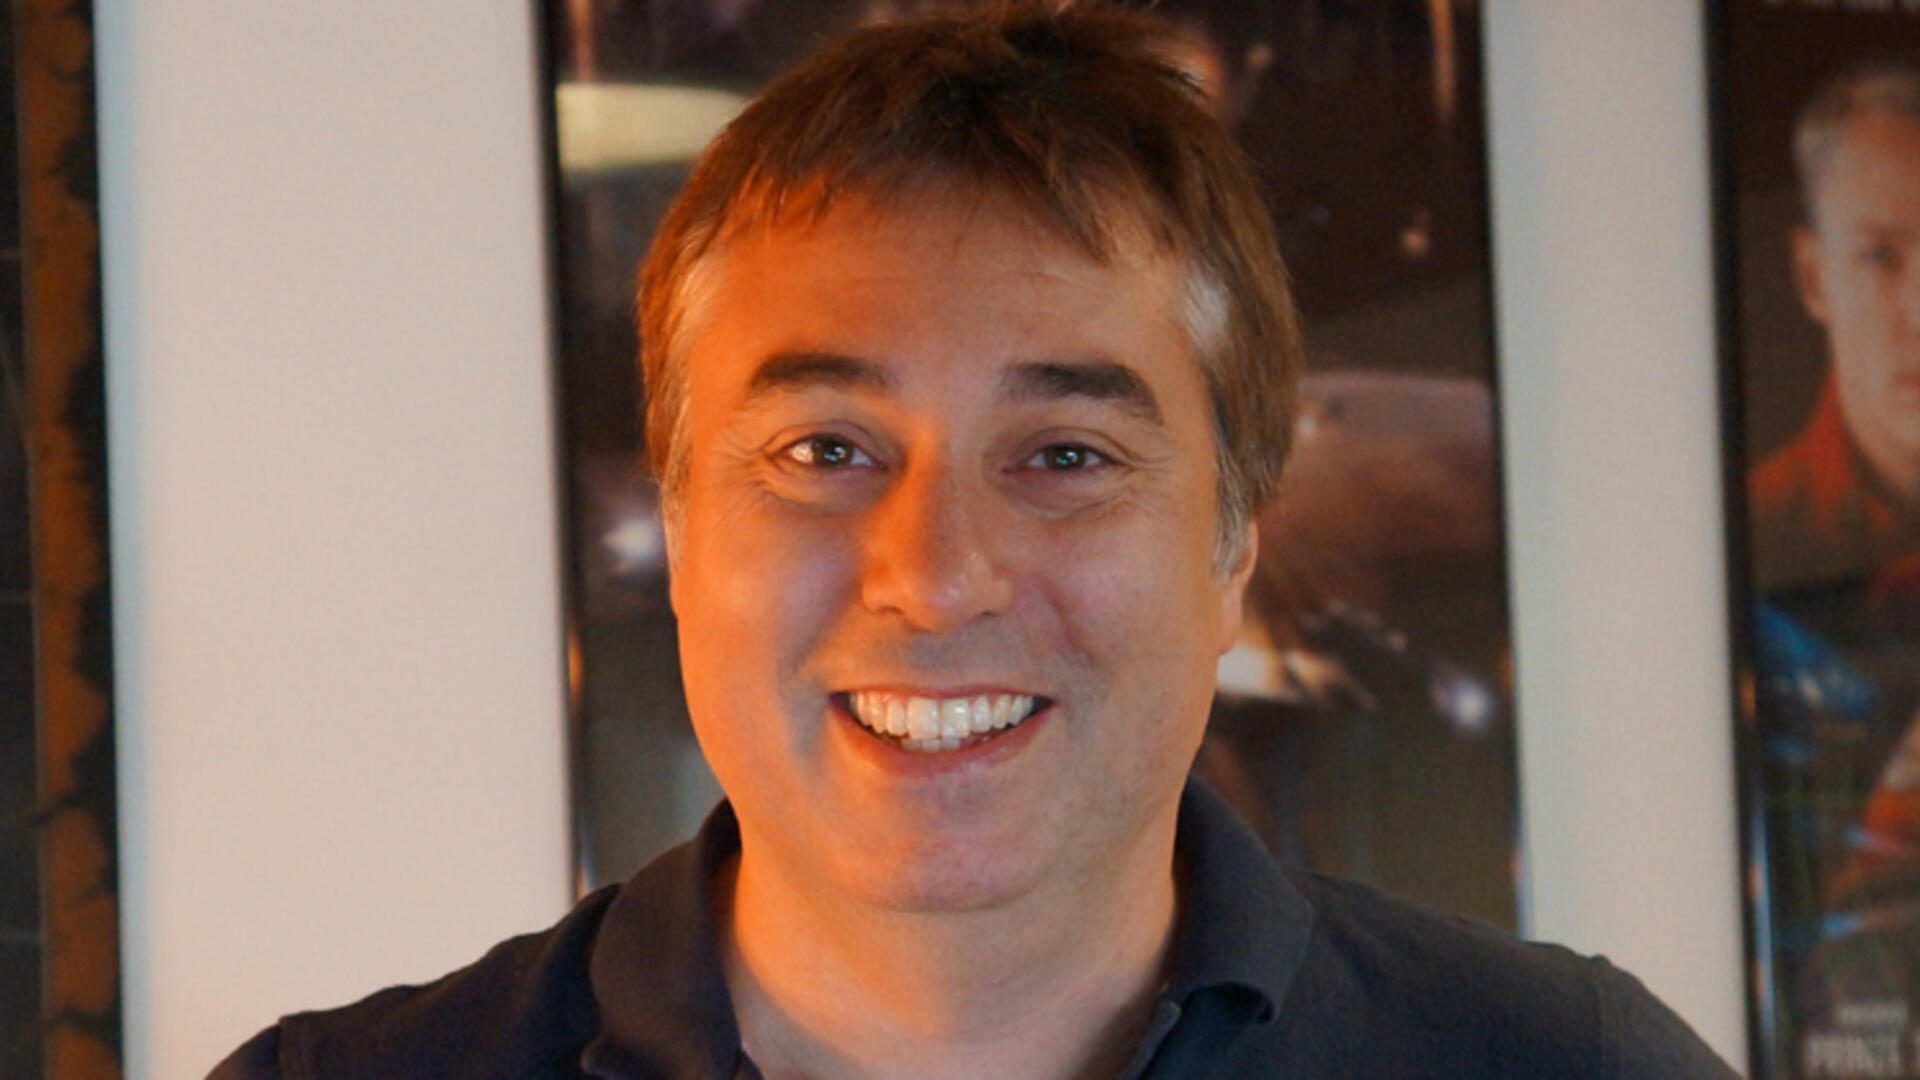 The Stars His Destination: Chris Roberts from Origin to Star Citizen